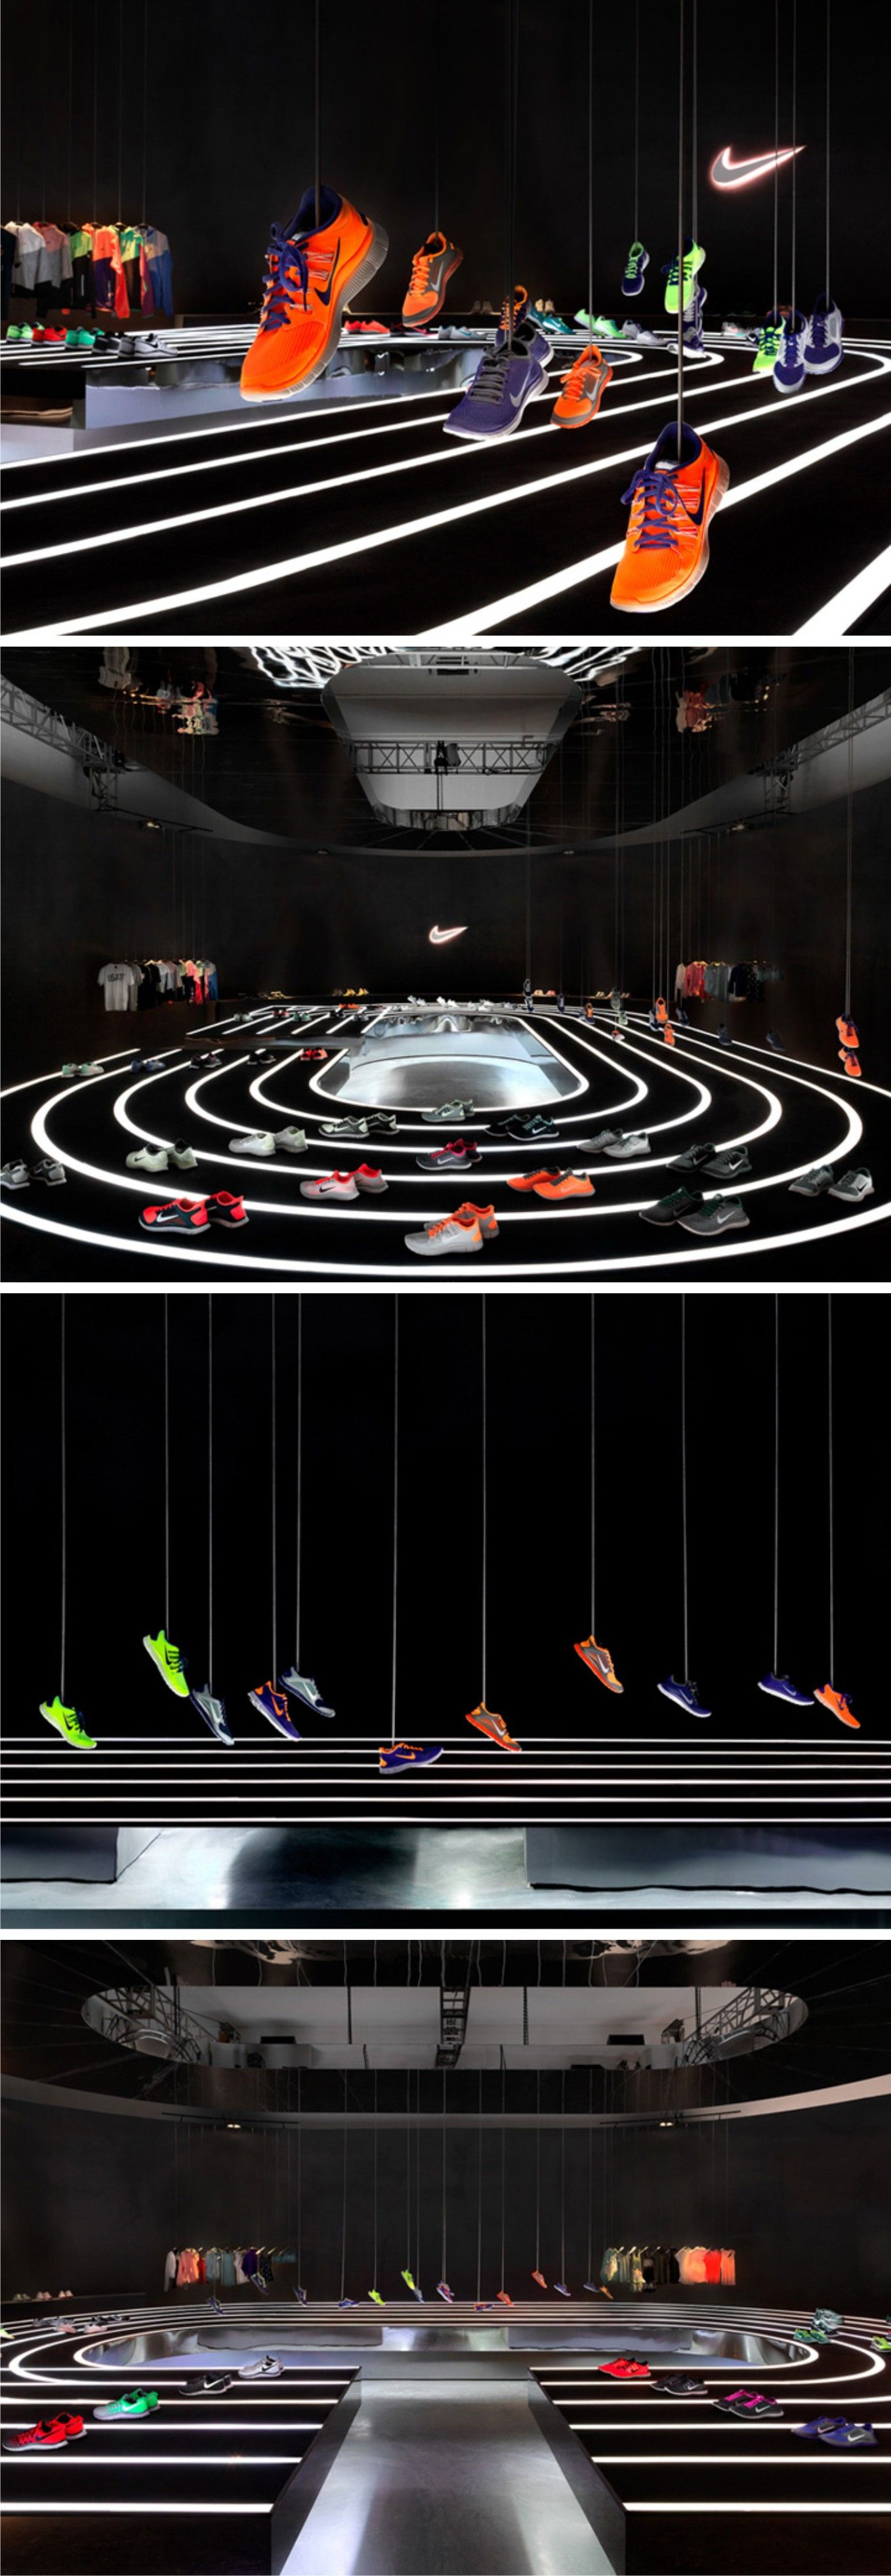 Nike Free 2013 installation by Studio-at-Large, Beijing. retaildesignblog....